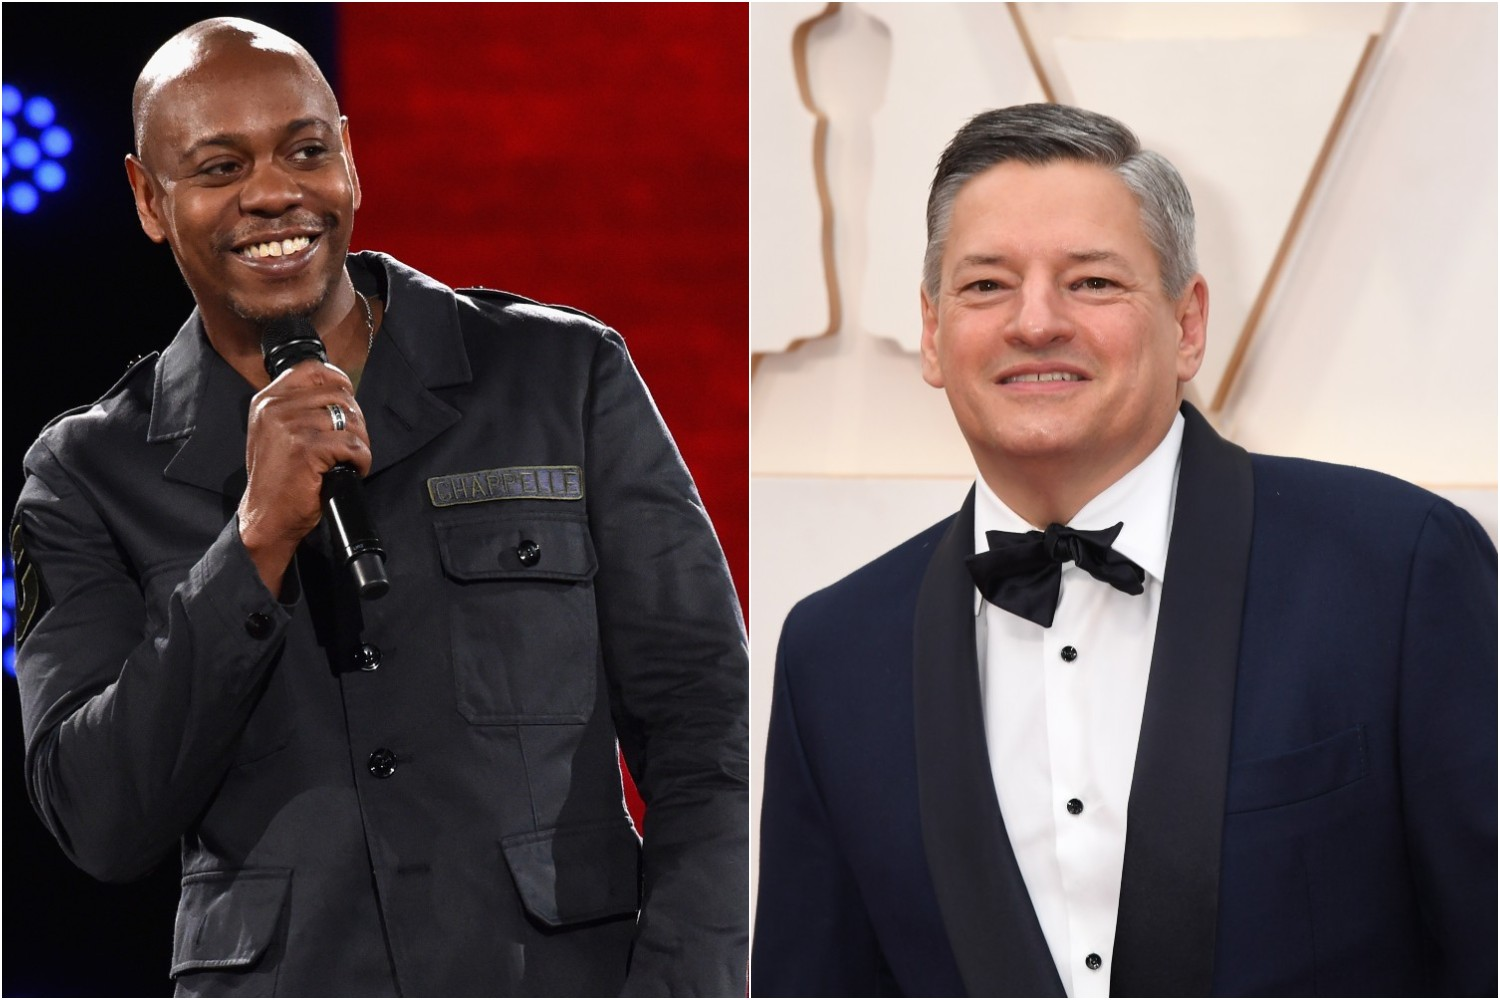 6 Newest Netflix-Chappelle Developments: Streaming Giant Fires Staffer Over Leaked Info, CEO's Memo